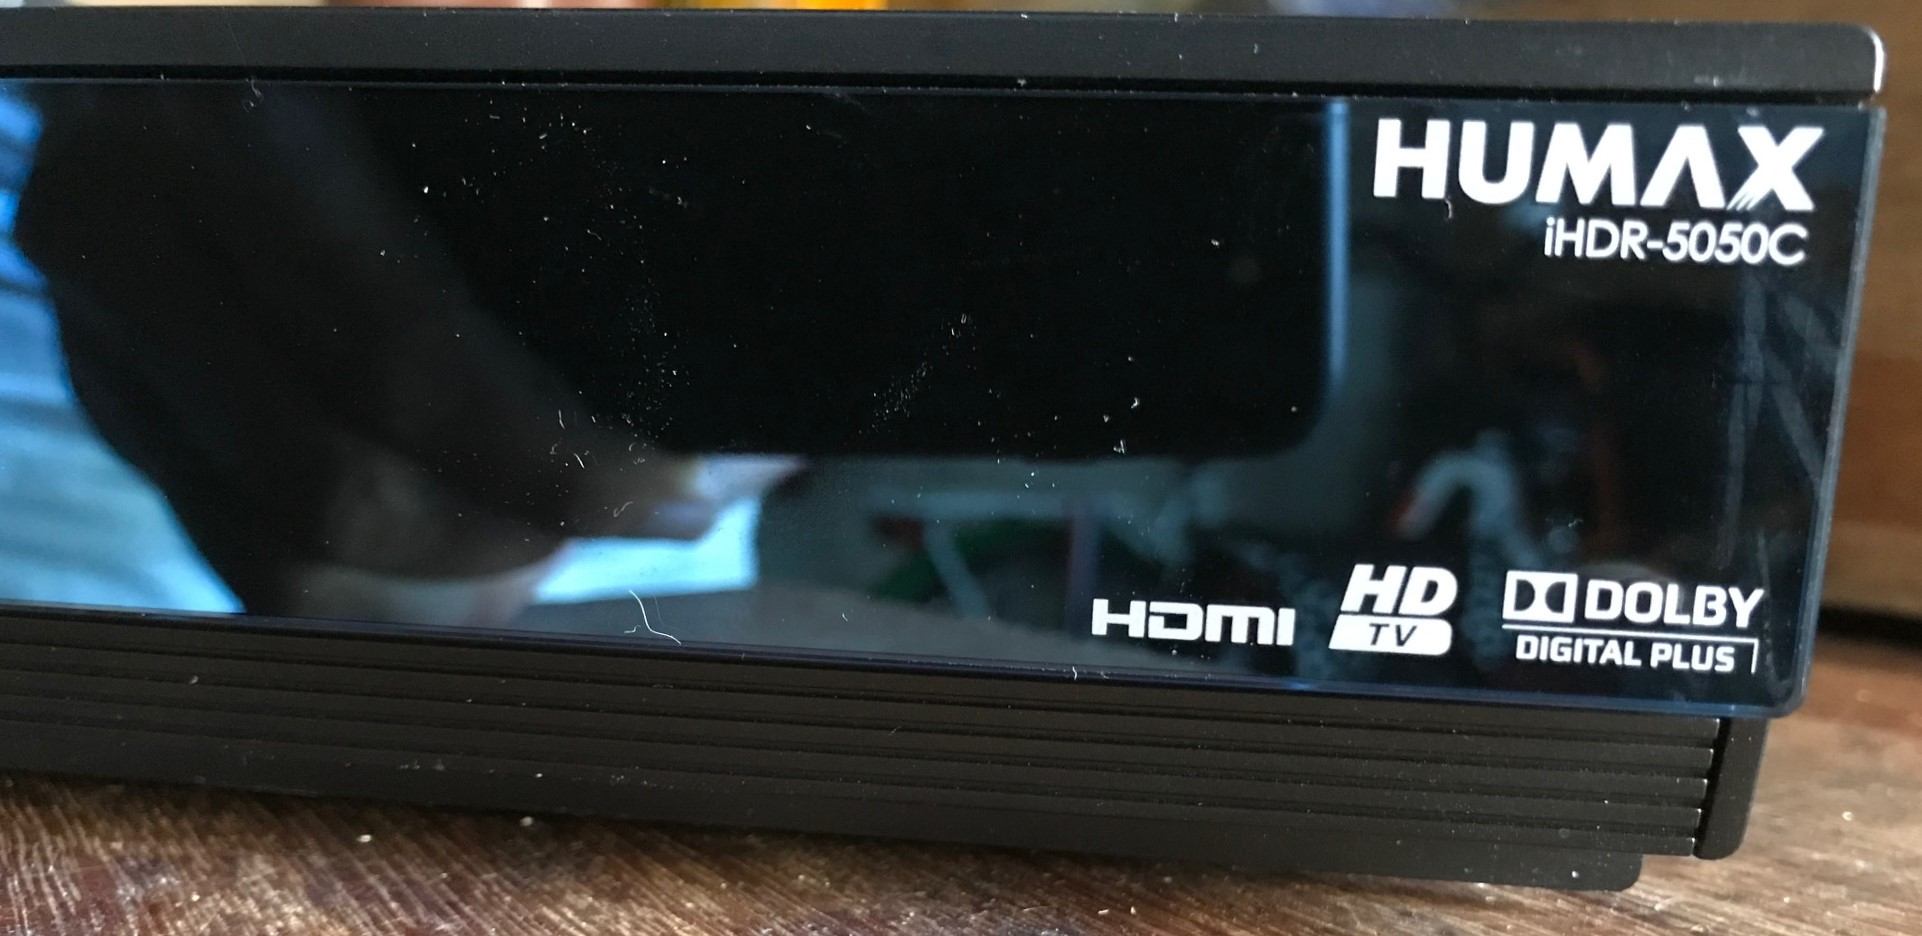 Humax iHDR-5050C digitale HD recorder van Ziggo